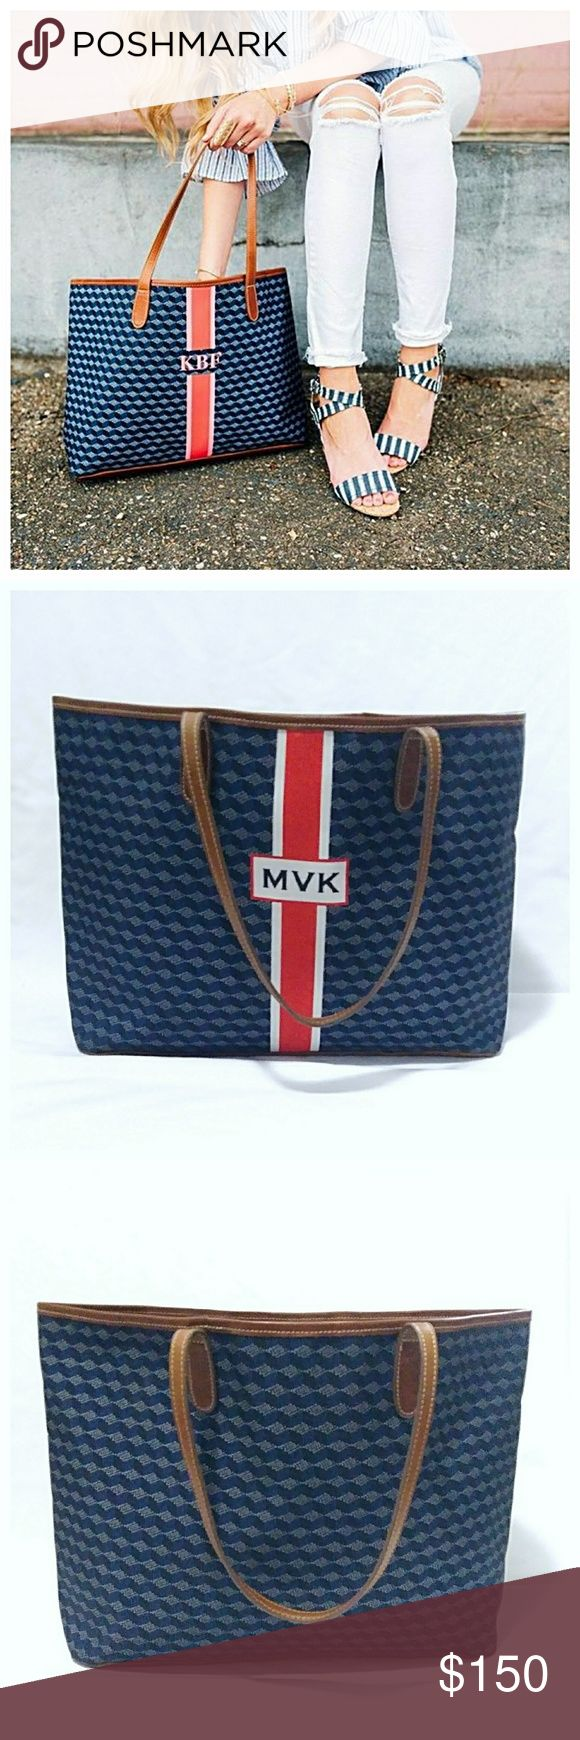 """Barrington Monogrammed St. Ann Tote Authentic Barrington tote that features a roomy interior, zipper pouch & three slip pockets. As you can see there are some interior spots and slight strap wear, but It's in great shape overall. If your initials don't match MVK, you can find creative ways to cover or alter it, or simply wear that side against you. Comes from a smoke-free, pet-free clean home. Covershot is for reference only. Measures 12"""" H x 14"""" L x 6"""" W + 10"""" strap drop. 💥 Reasonable…"""